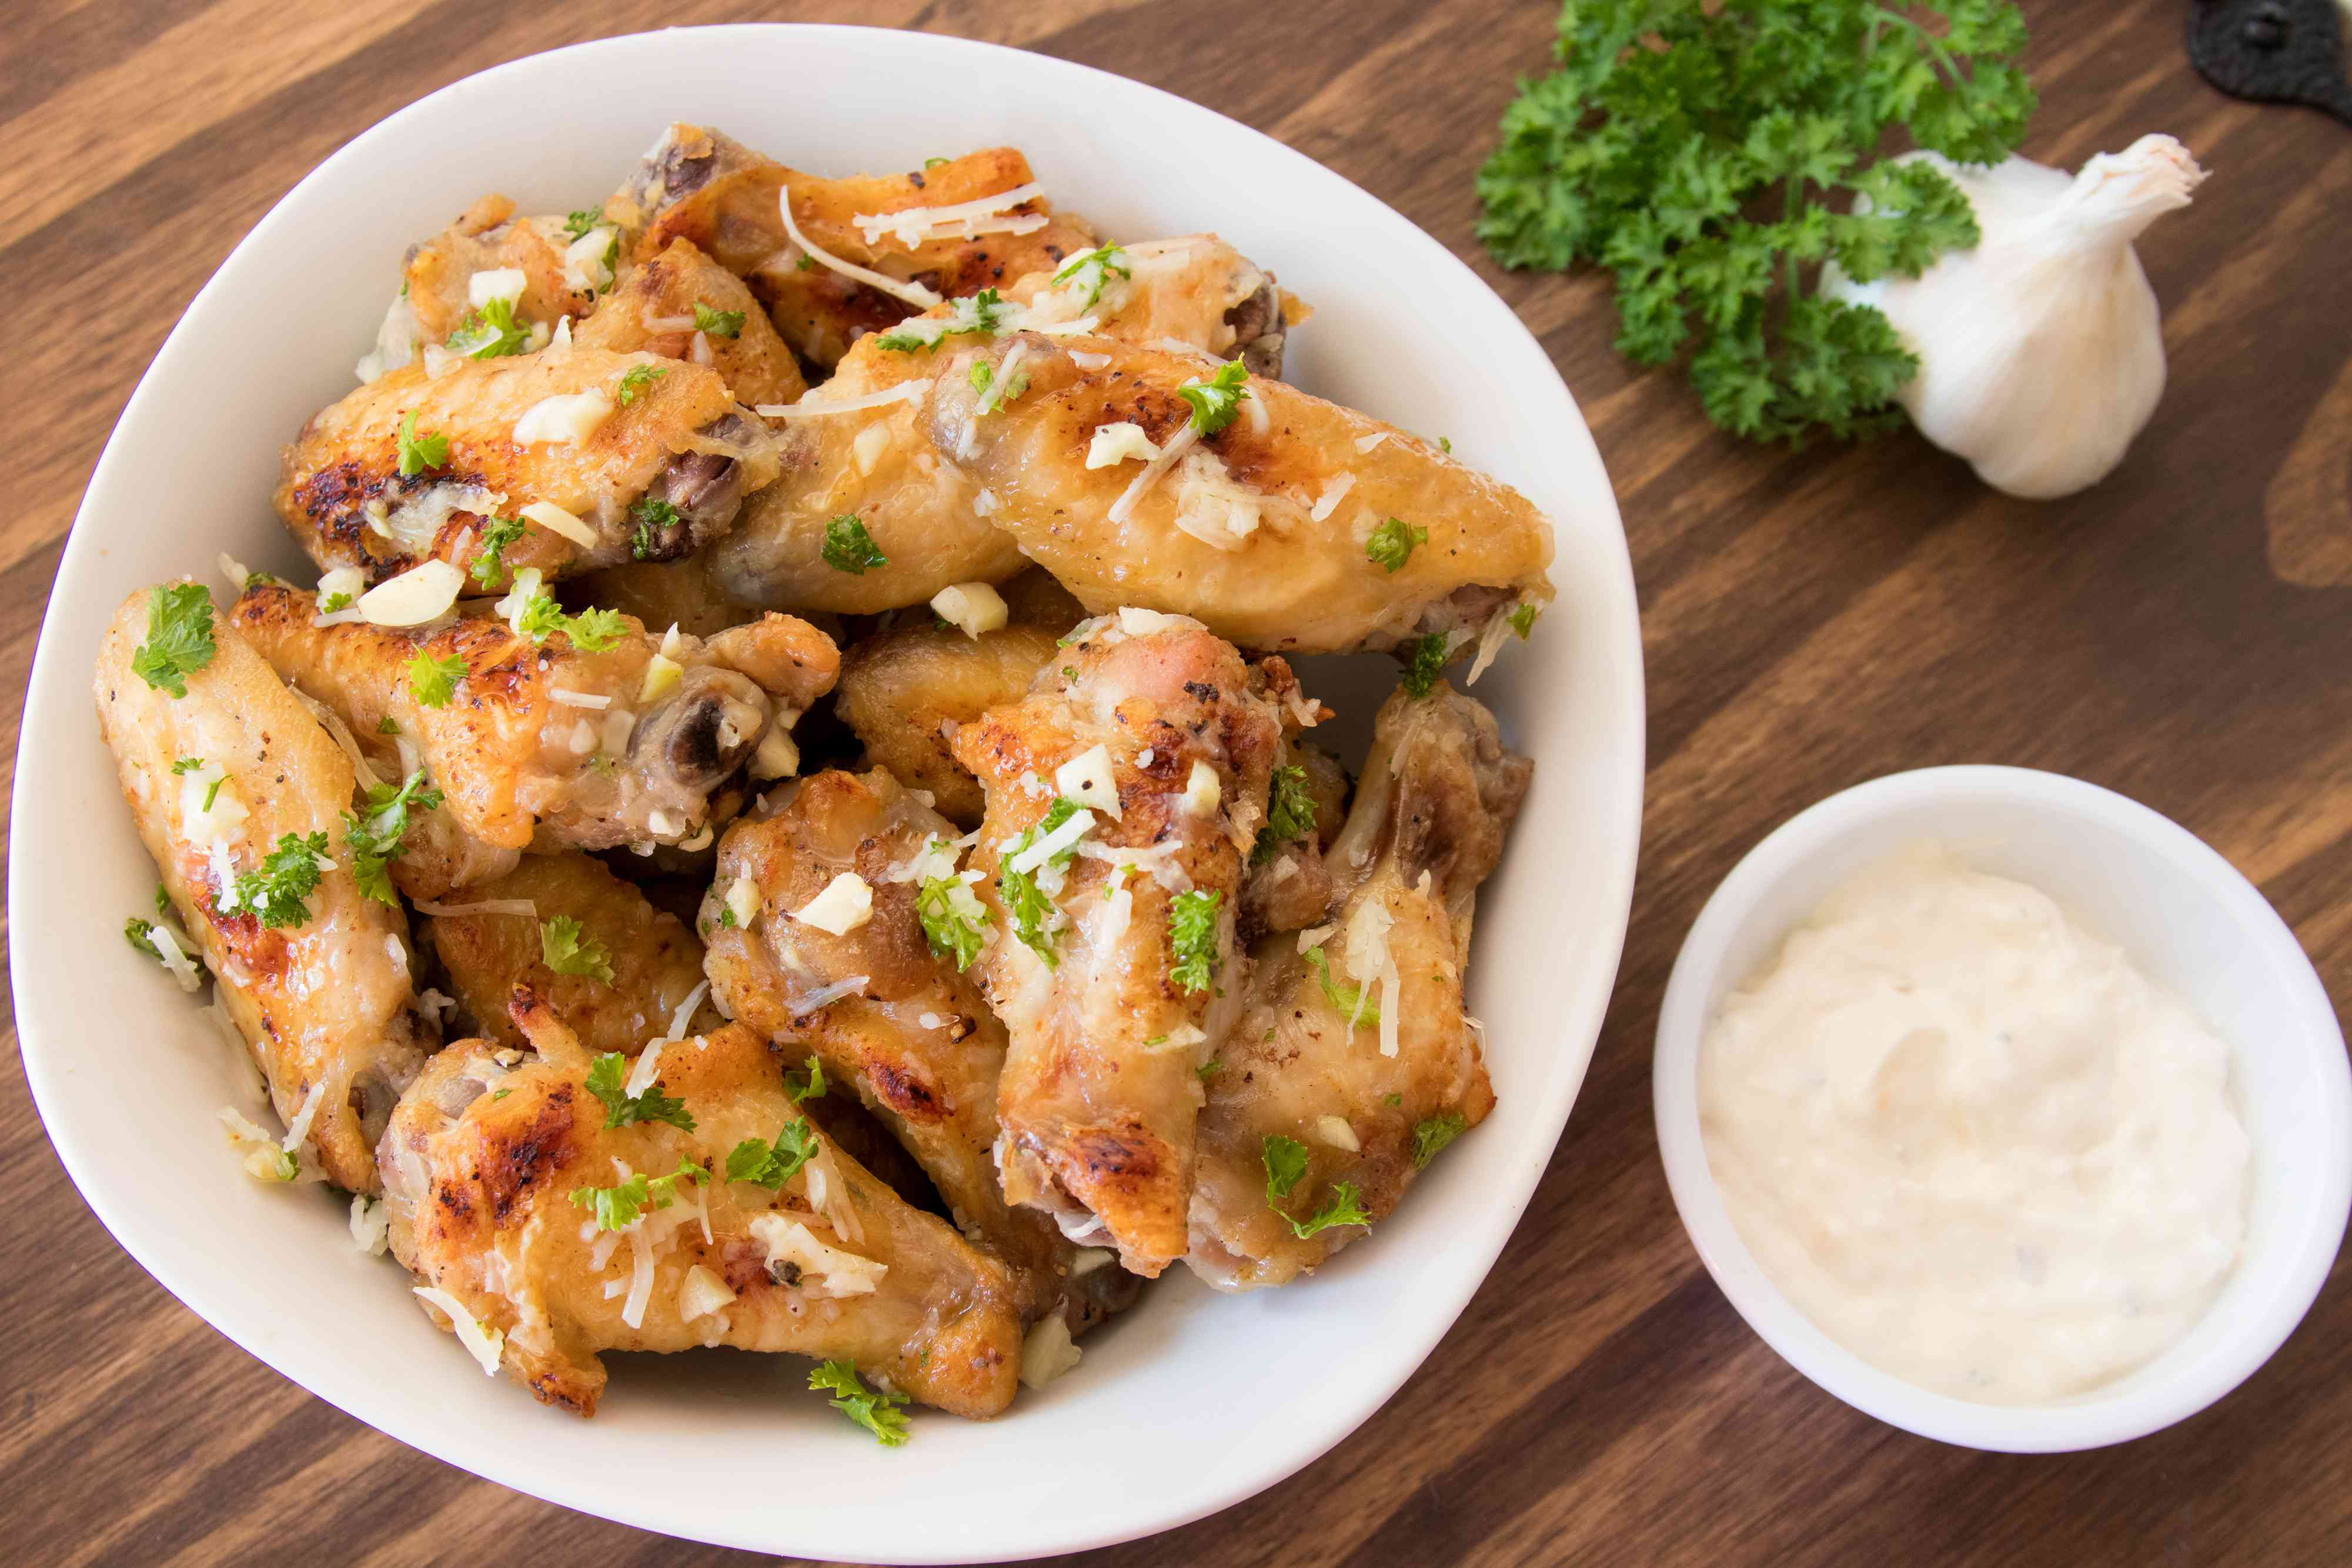 Garlic-Parmesan chicken wings with sauce